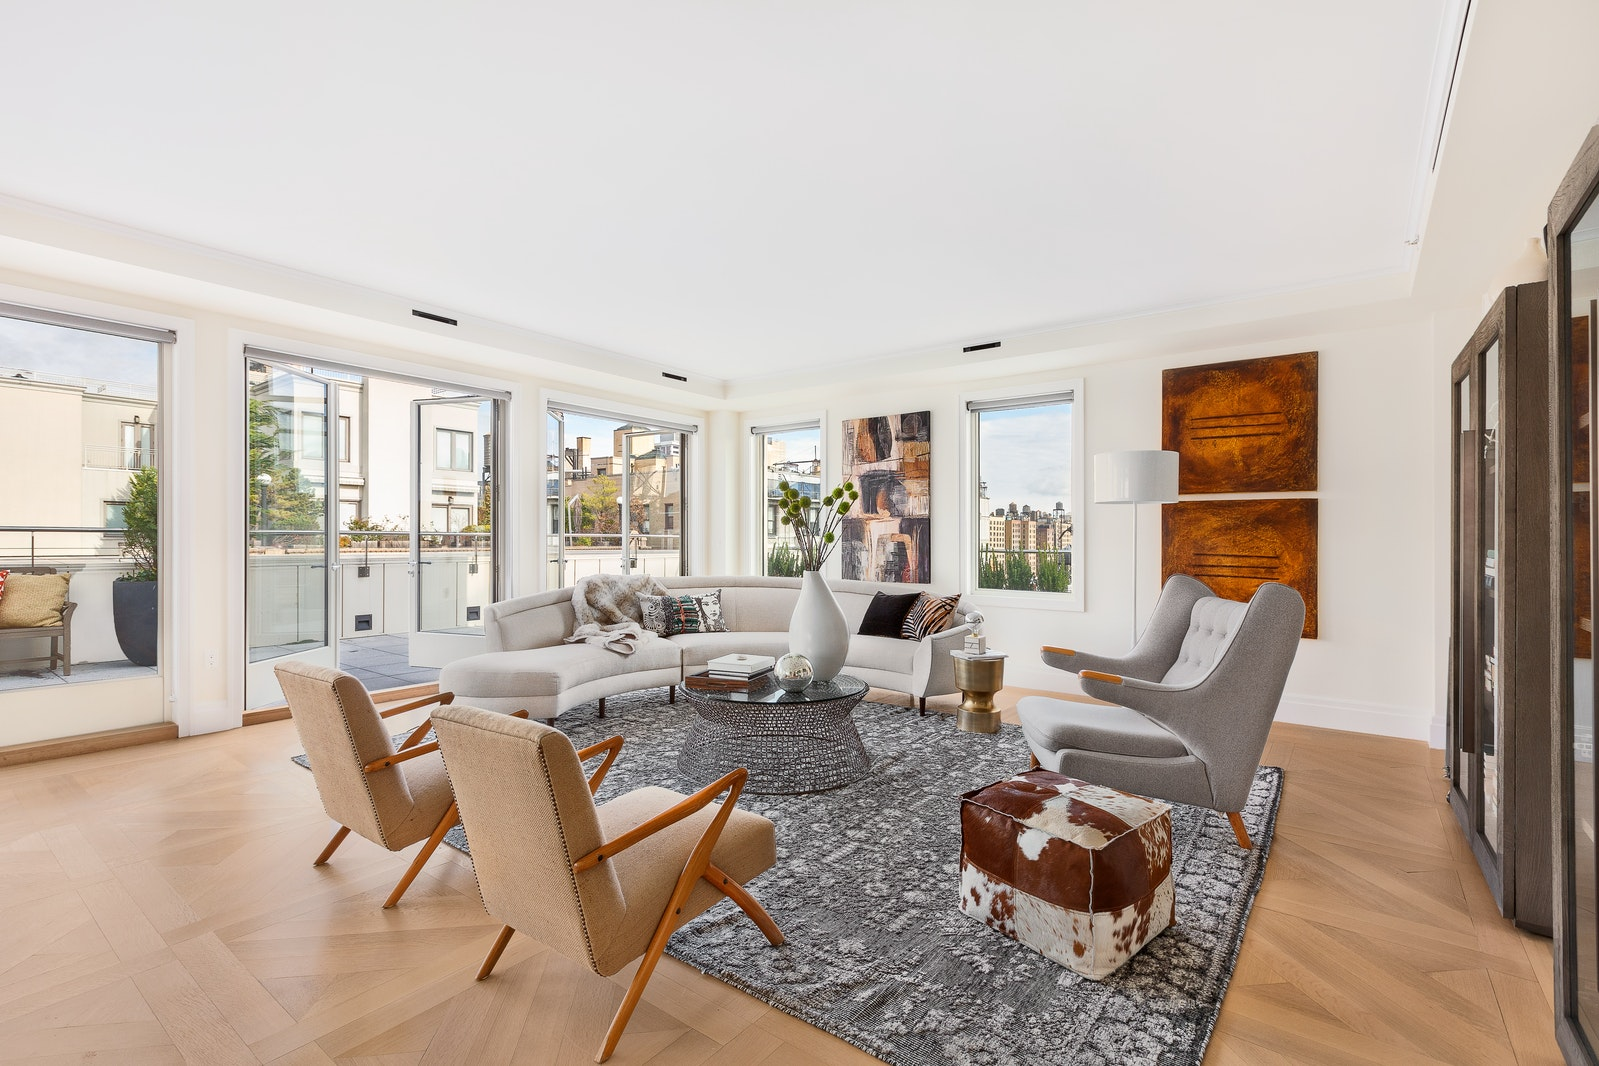 498 West End Avenue Ph, Upper West Side, NYC, 10024, $14,950,000, Property For Sale, Halstead Real Estate, Photo 4